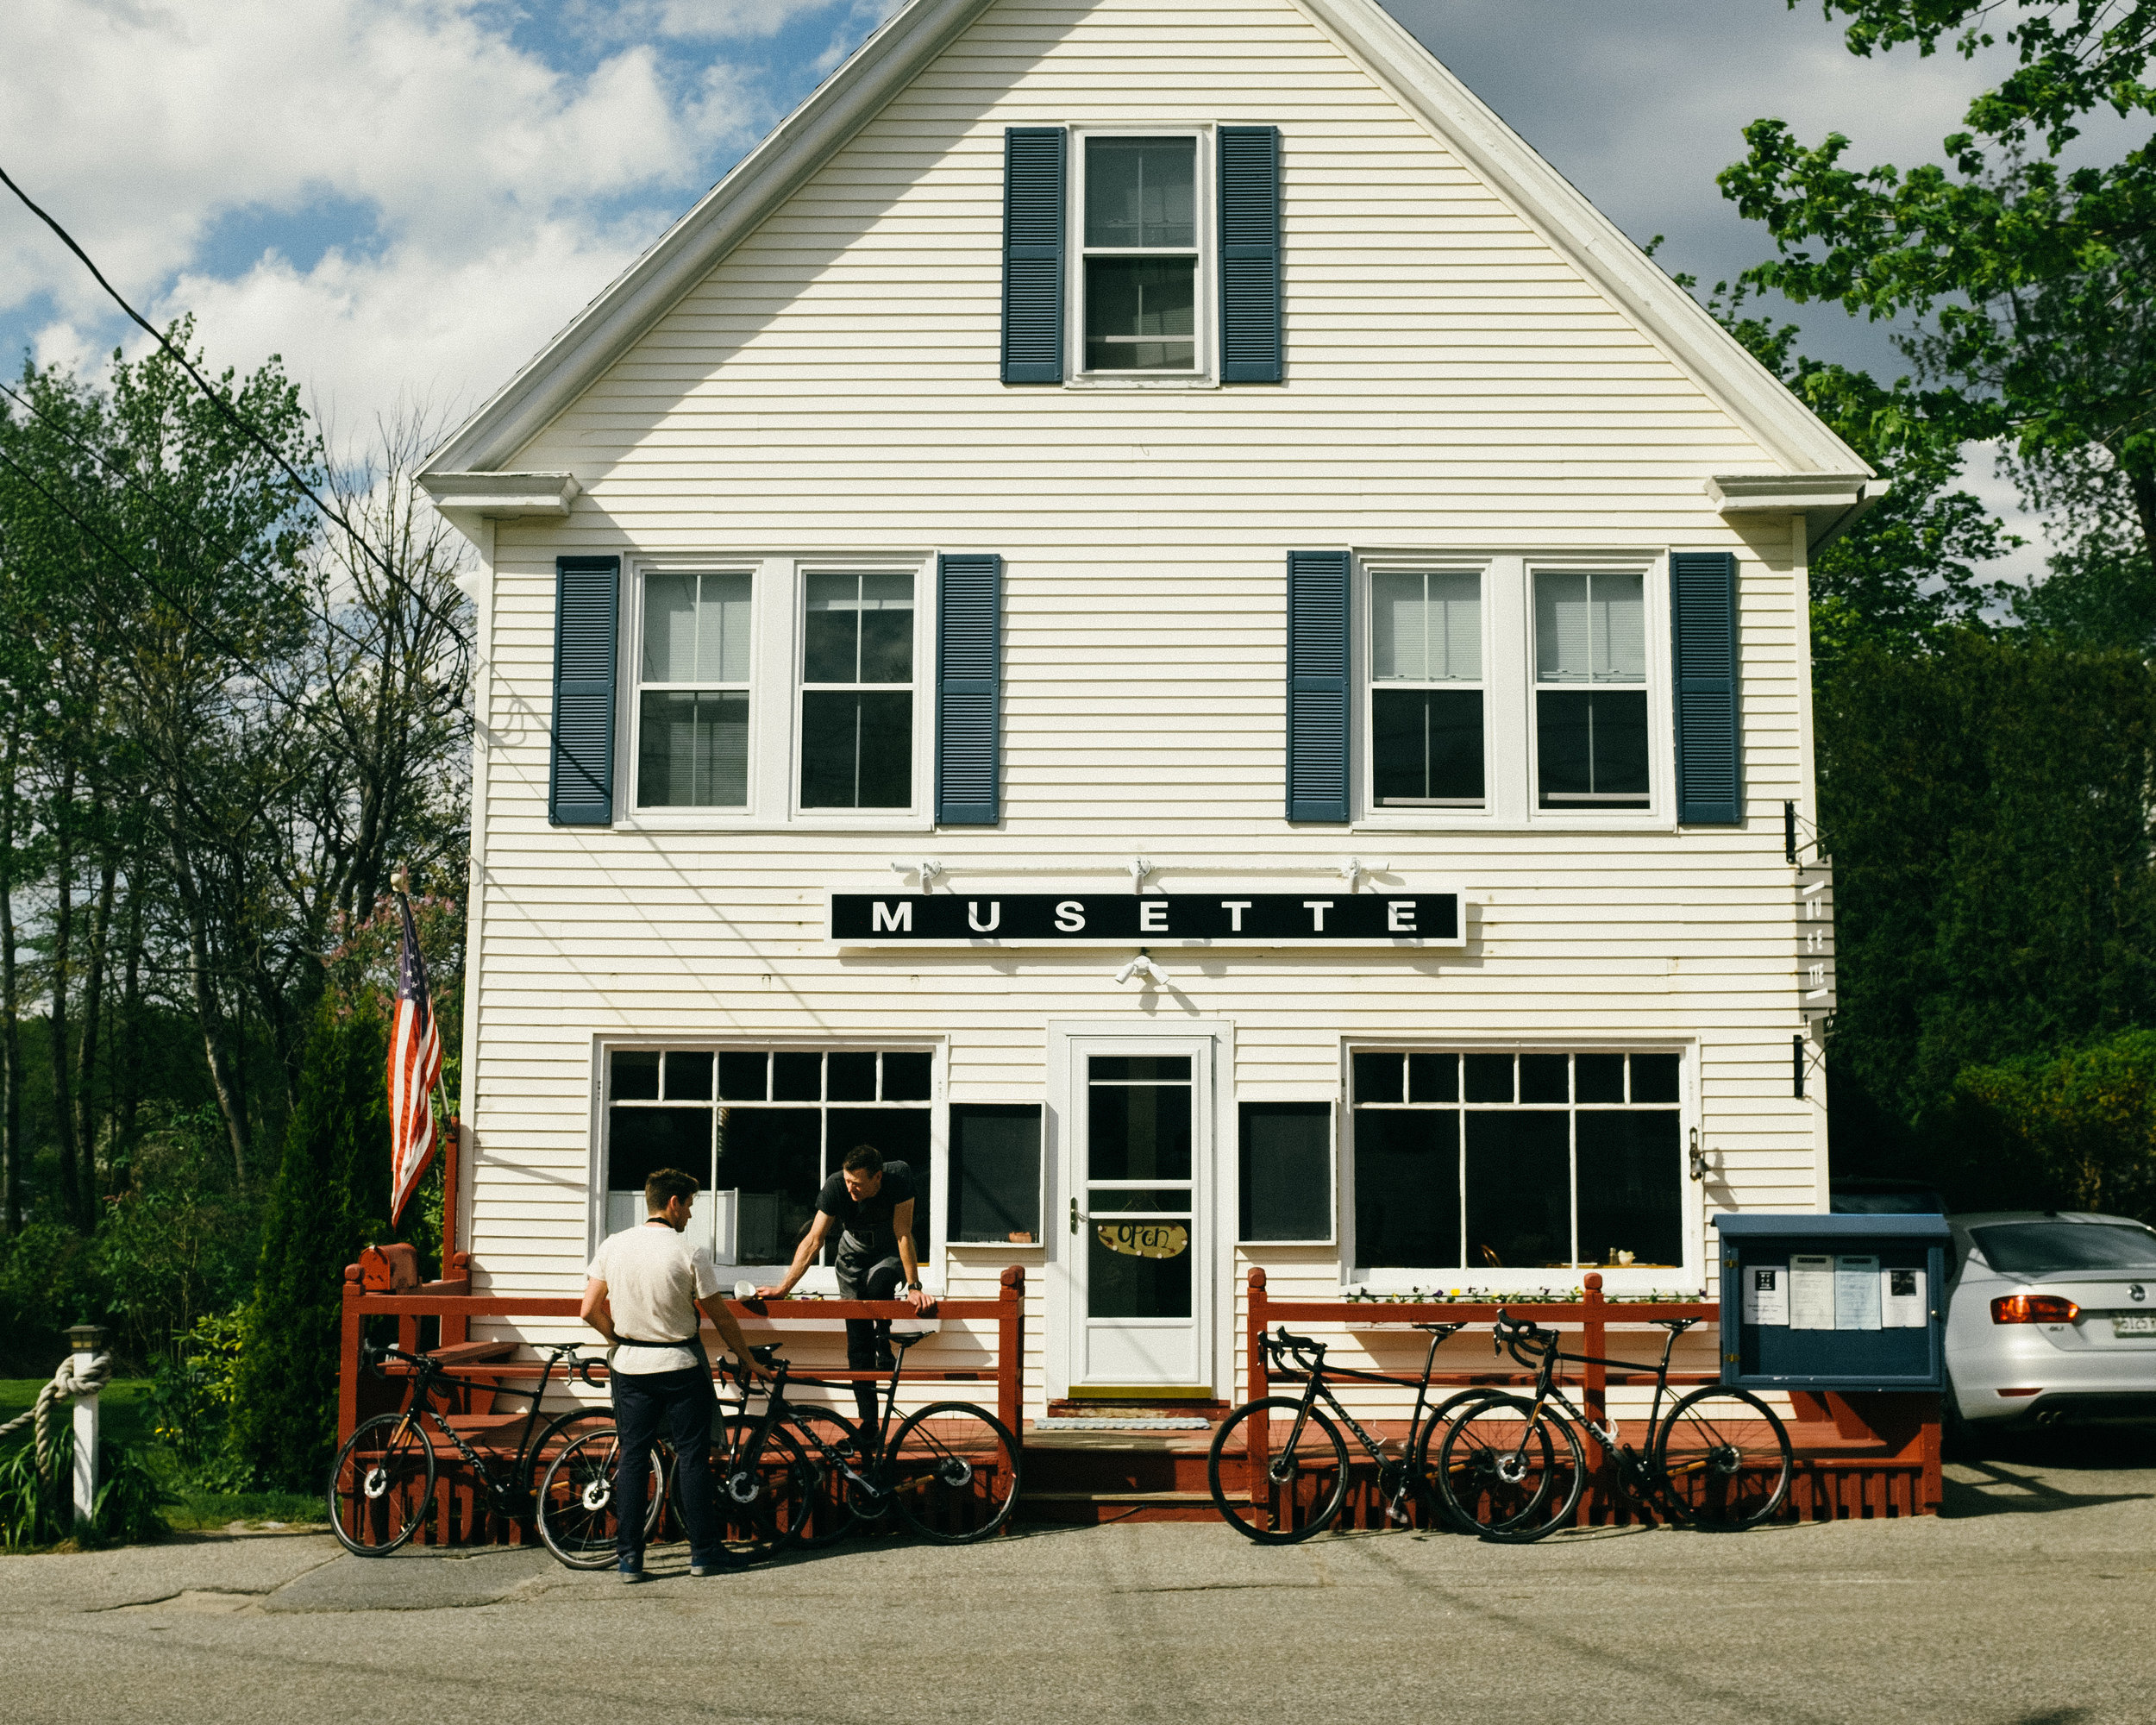 Exclusive Stay At Musette Restaurant    Kennebunkport, Maine   The spiritual home of NTSQ Velo in the picturesque Cape Porpoise community. The brainchild of NTSQ Velo co-founder's Jonathan Cartwright and Travis McKenzie.  A stay at Musette includes an exclusive Chef's Dinner with Jonathan Cartwright, a guided 2-wheel tour of coastal Maine, bike rental and cycling kit. Dates are limited from May - Oct.   Register interest